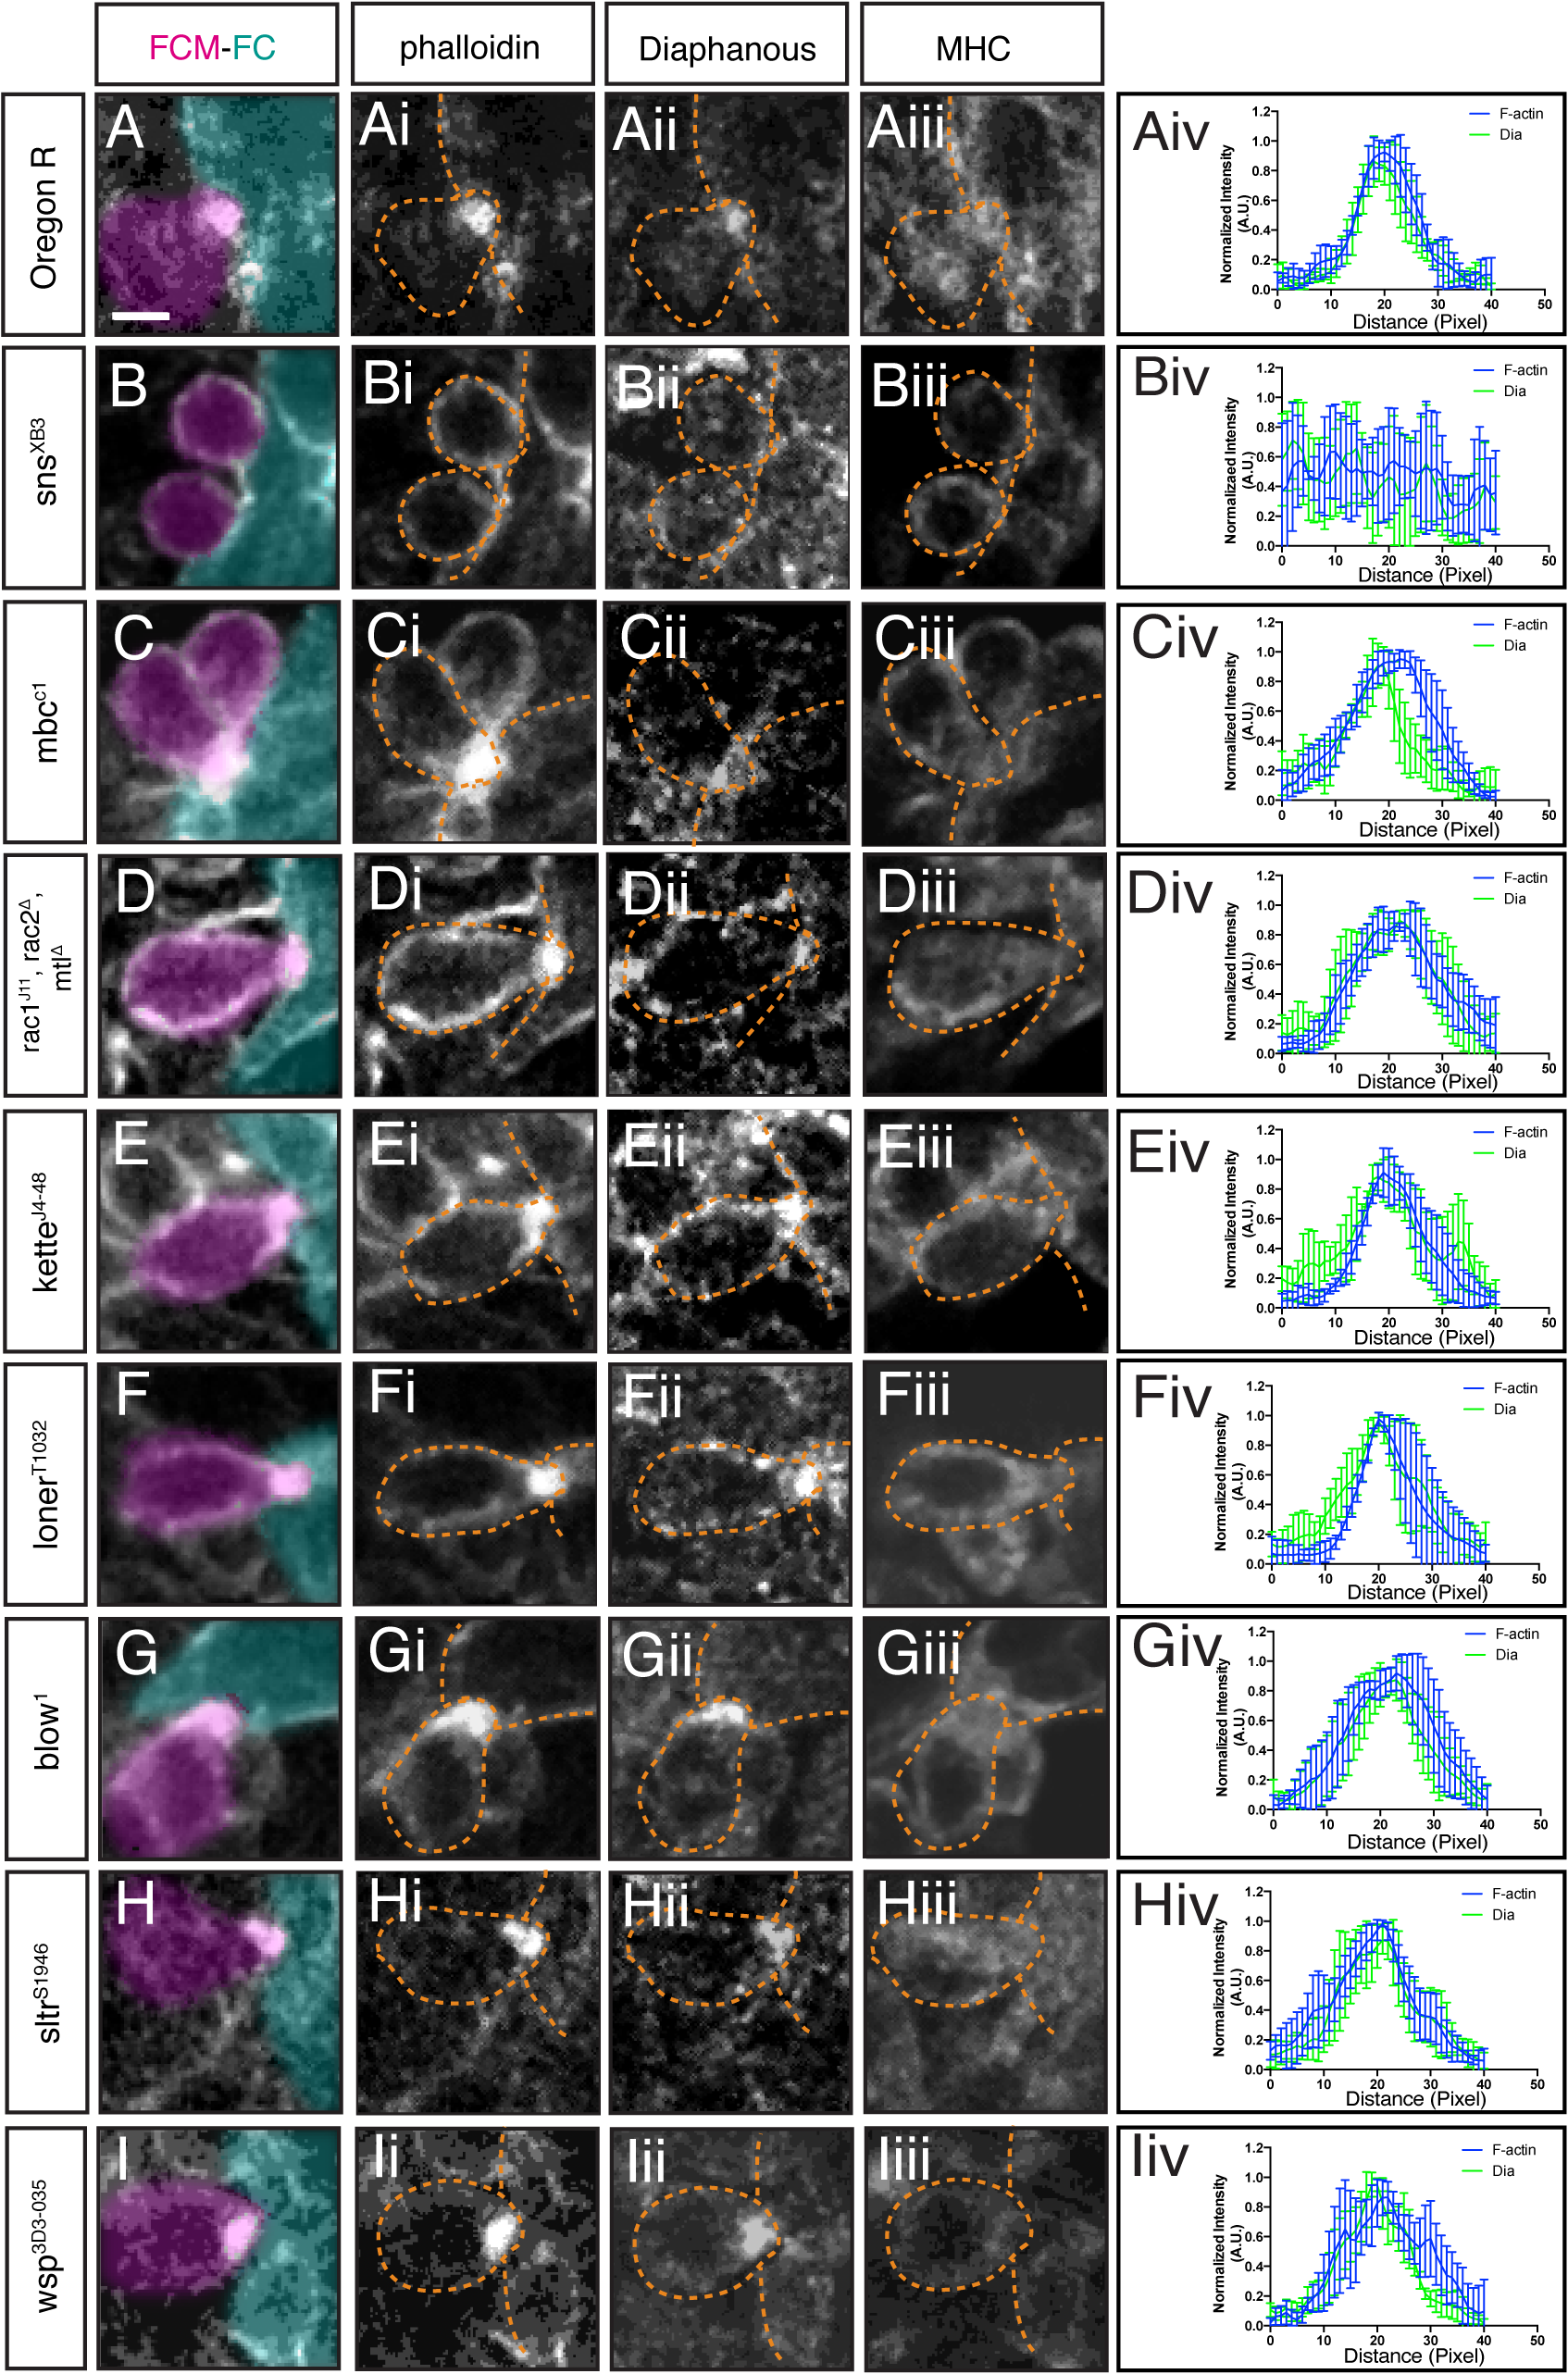 Dia localization at the fusion site is dependent on FC/FCM recognition and adhesion, but independent of regulators of Arp2/3.